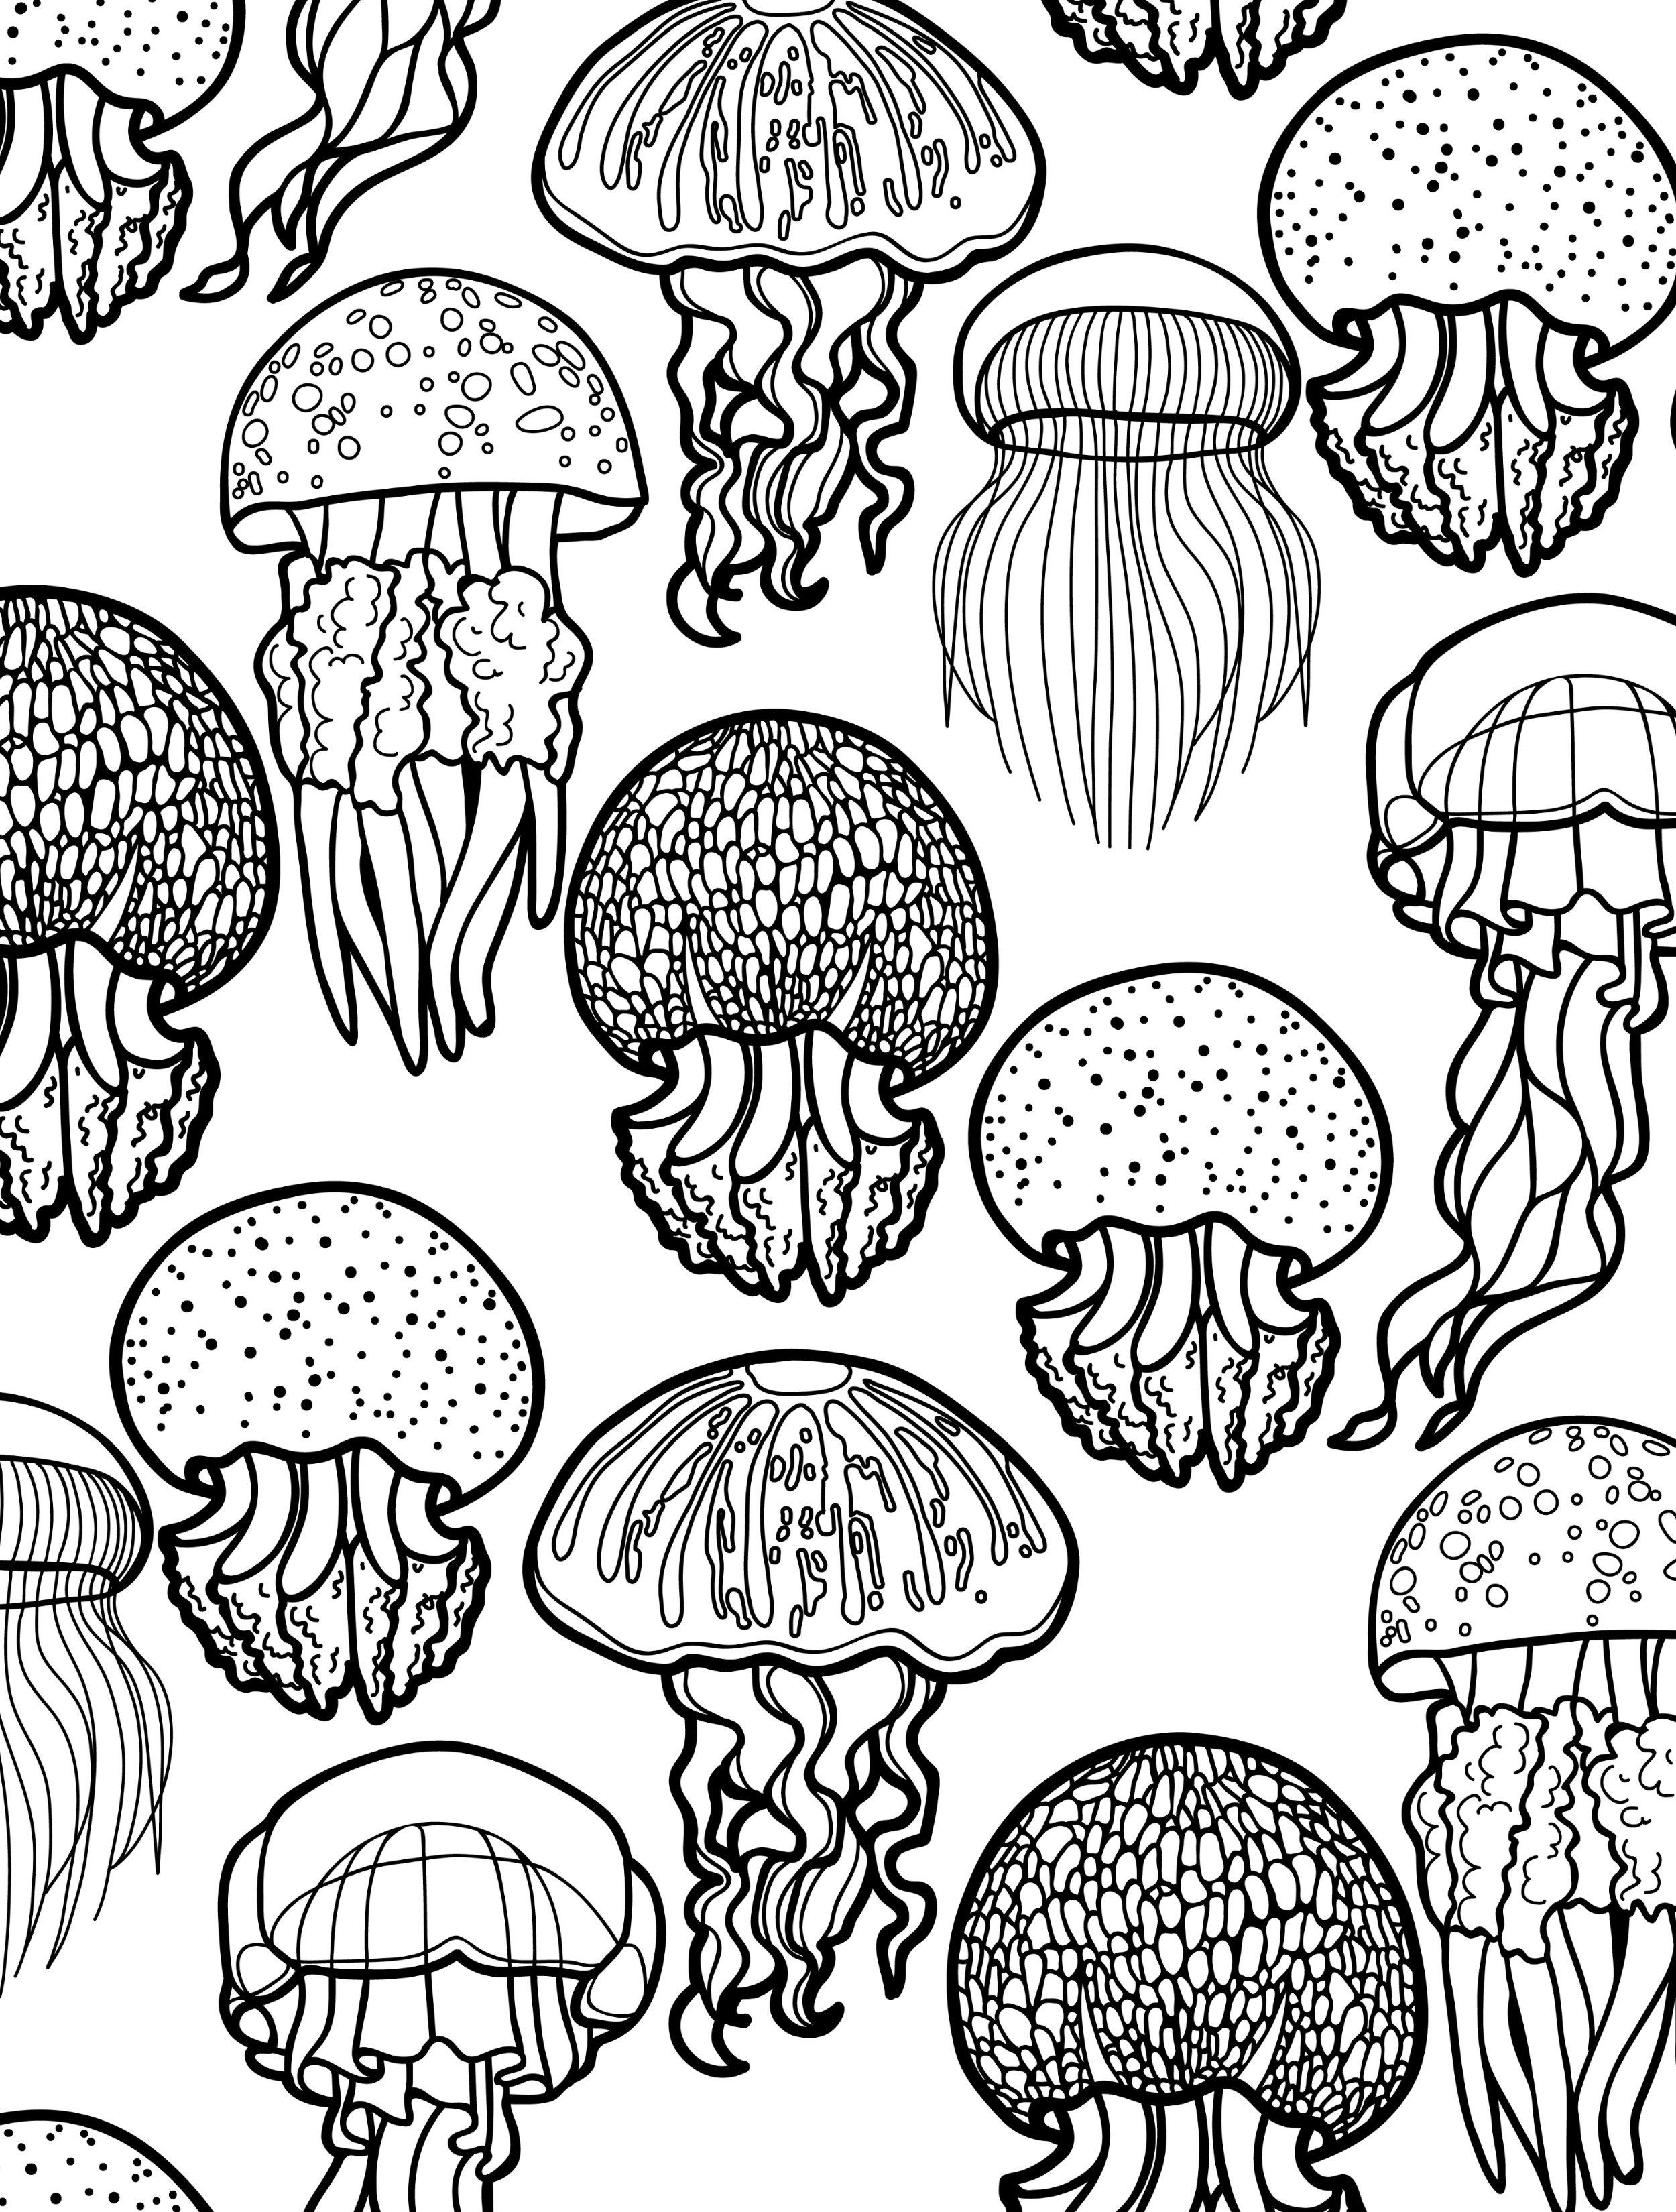 ocean themed coloring pages for adults to color pic Paper Art